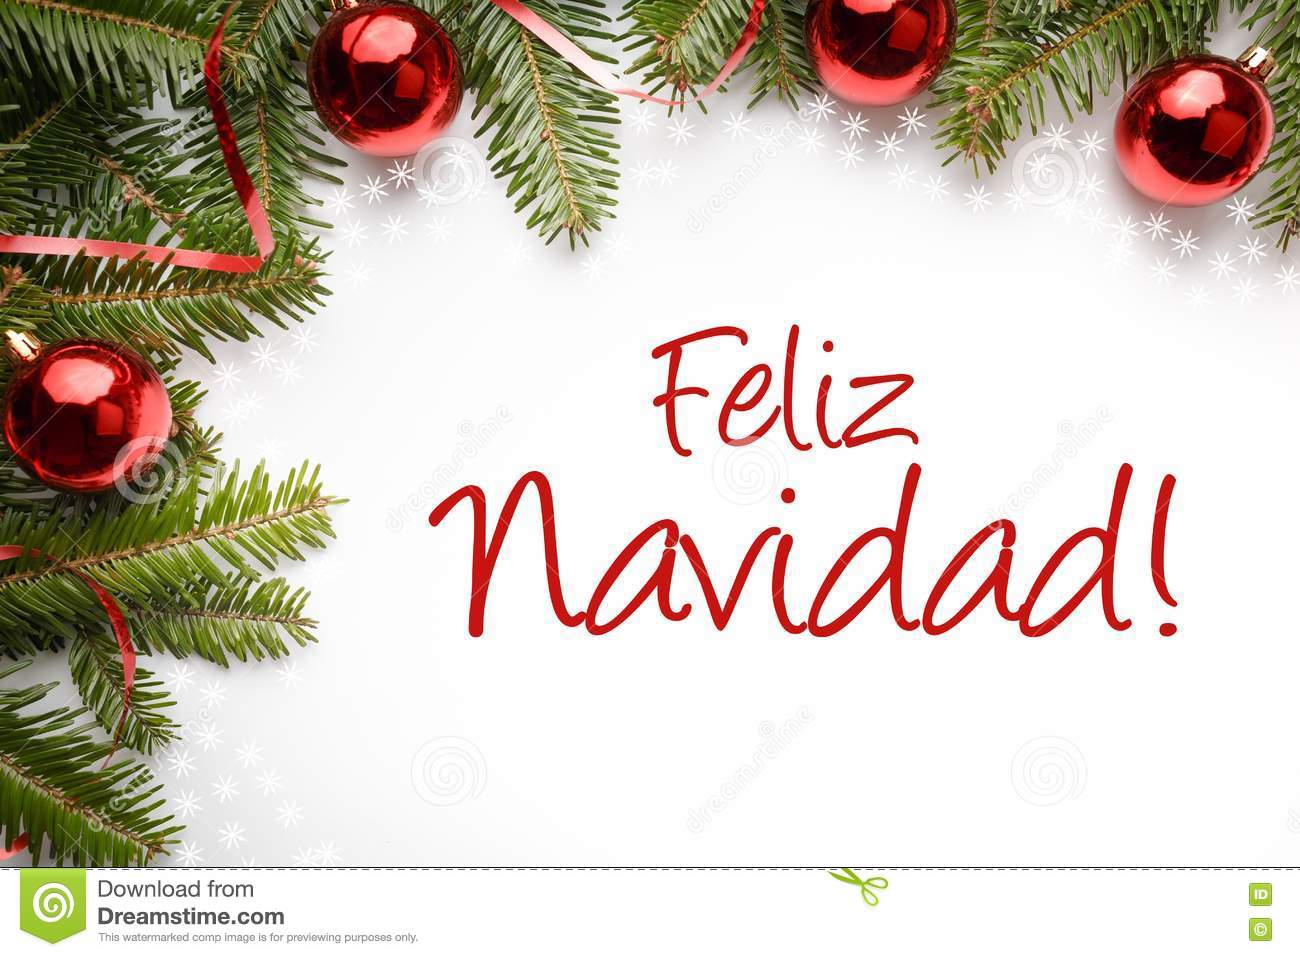 christmas decorations with christmas greeting in spanish feliz navidad merry christmas - Spanish Christmas Decorations